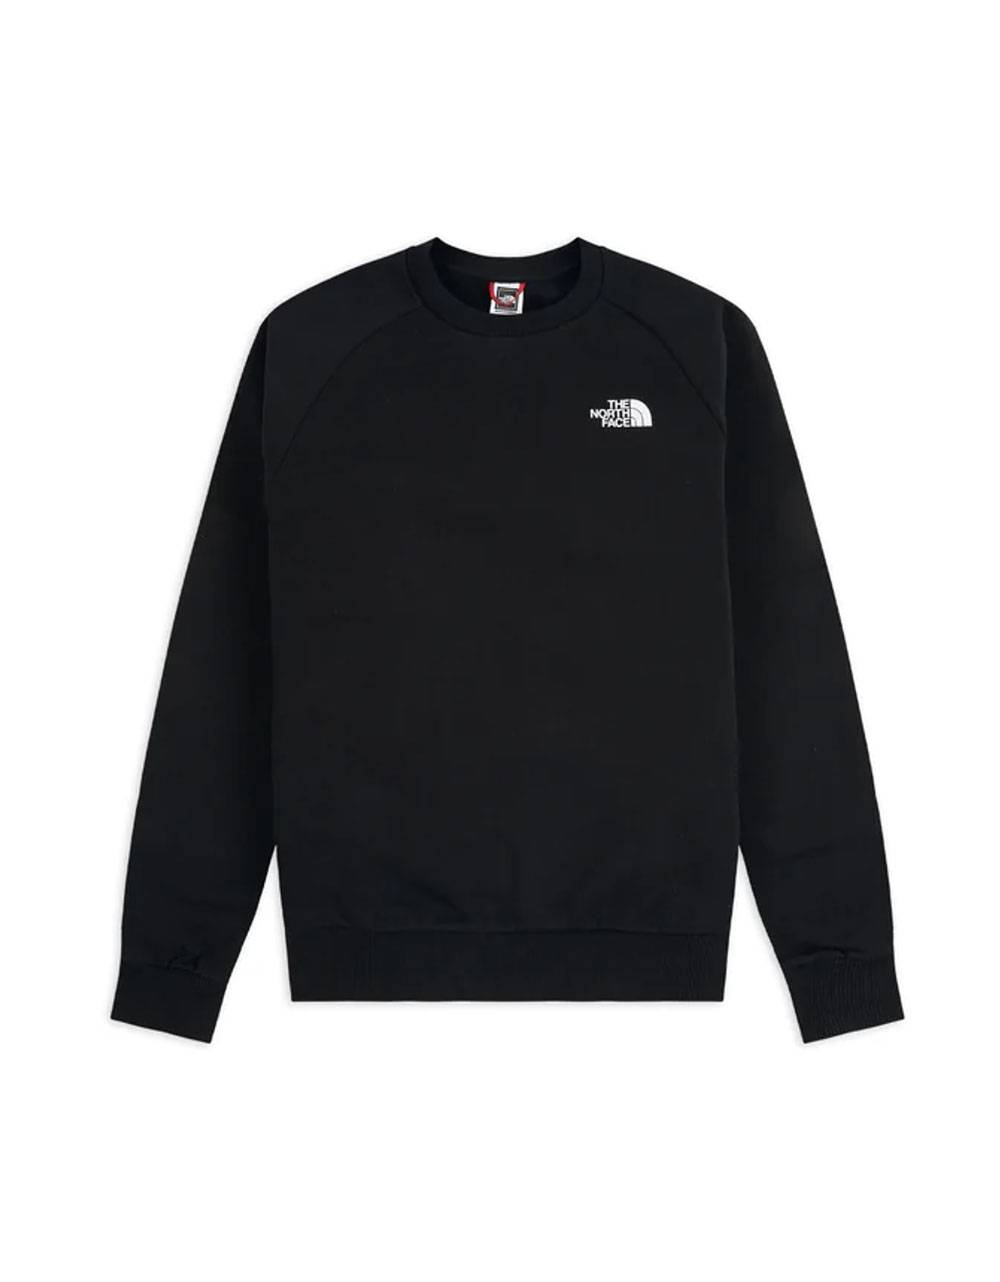 The North Face raglan red box crewneck sweater - Black/red THE NORTH FACE Sweater 75,41 €